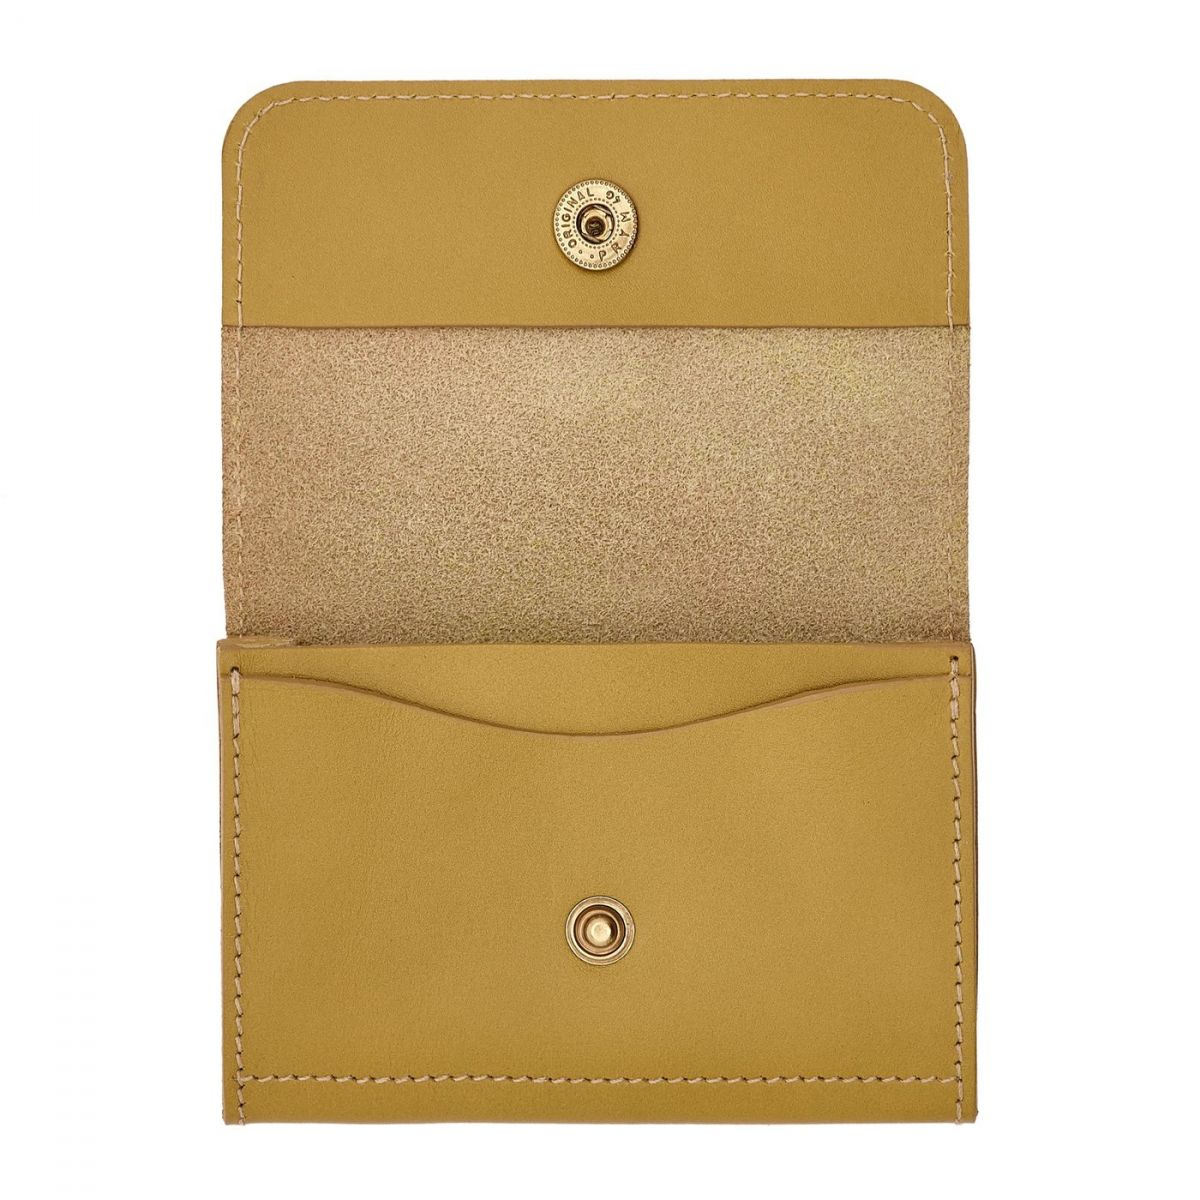 Card Case Piccolino in Cowhide Leather SCC006 color Curry | Details